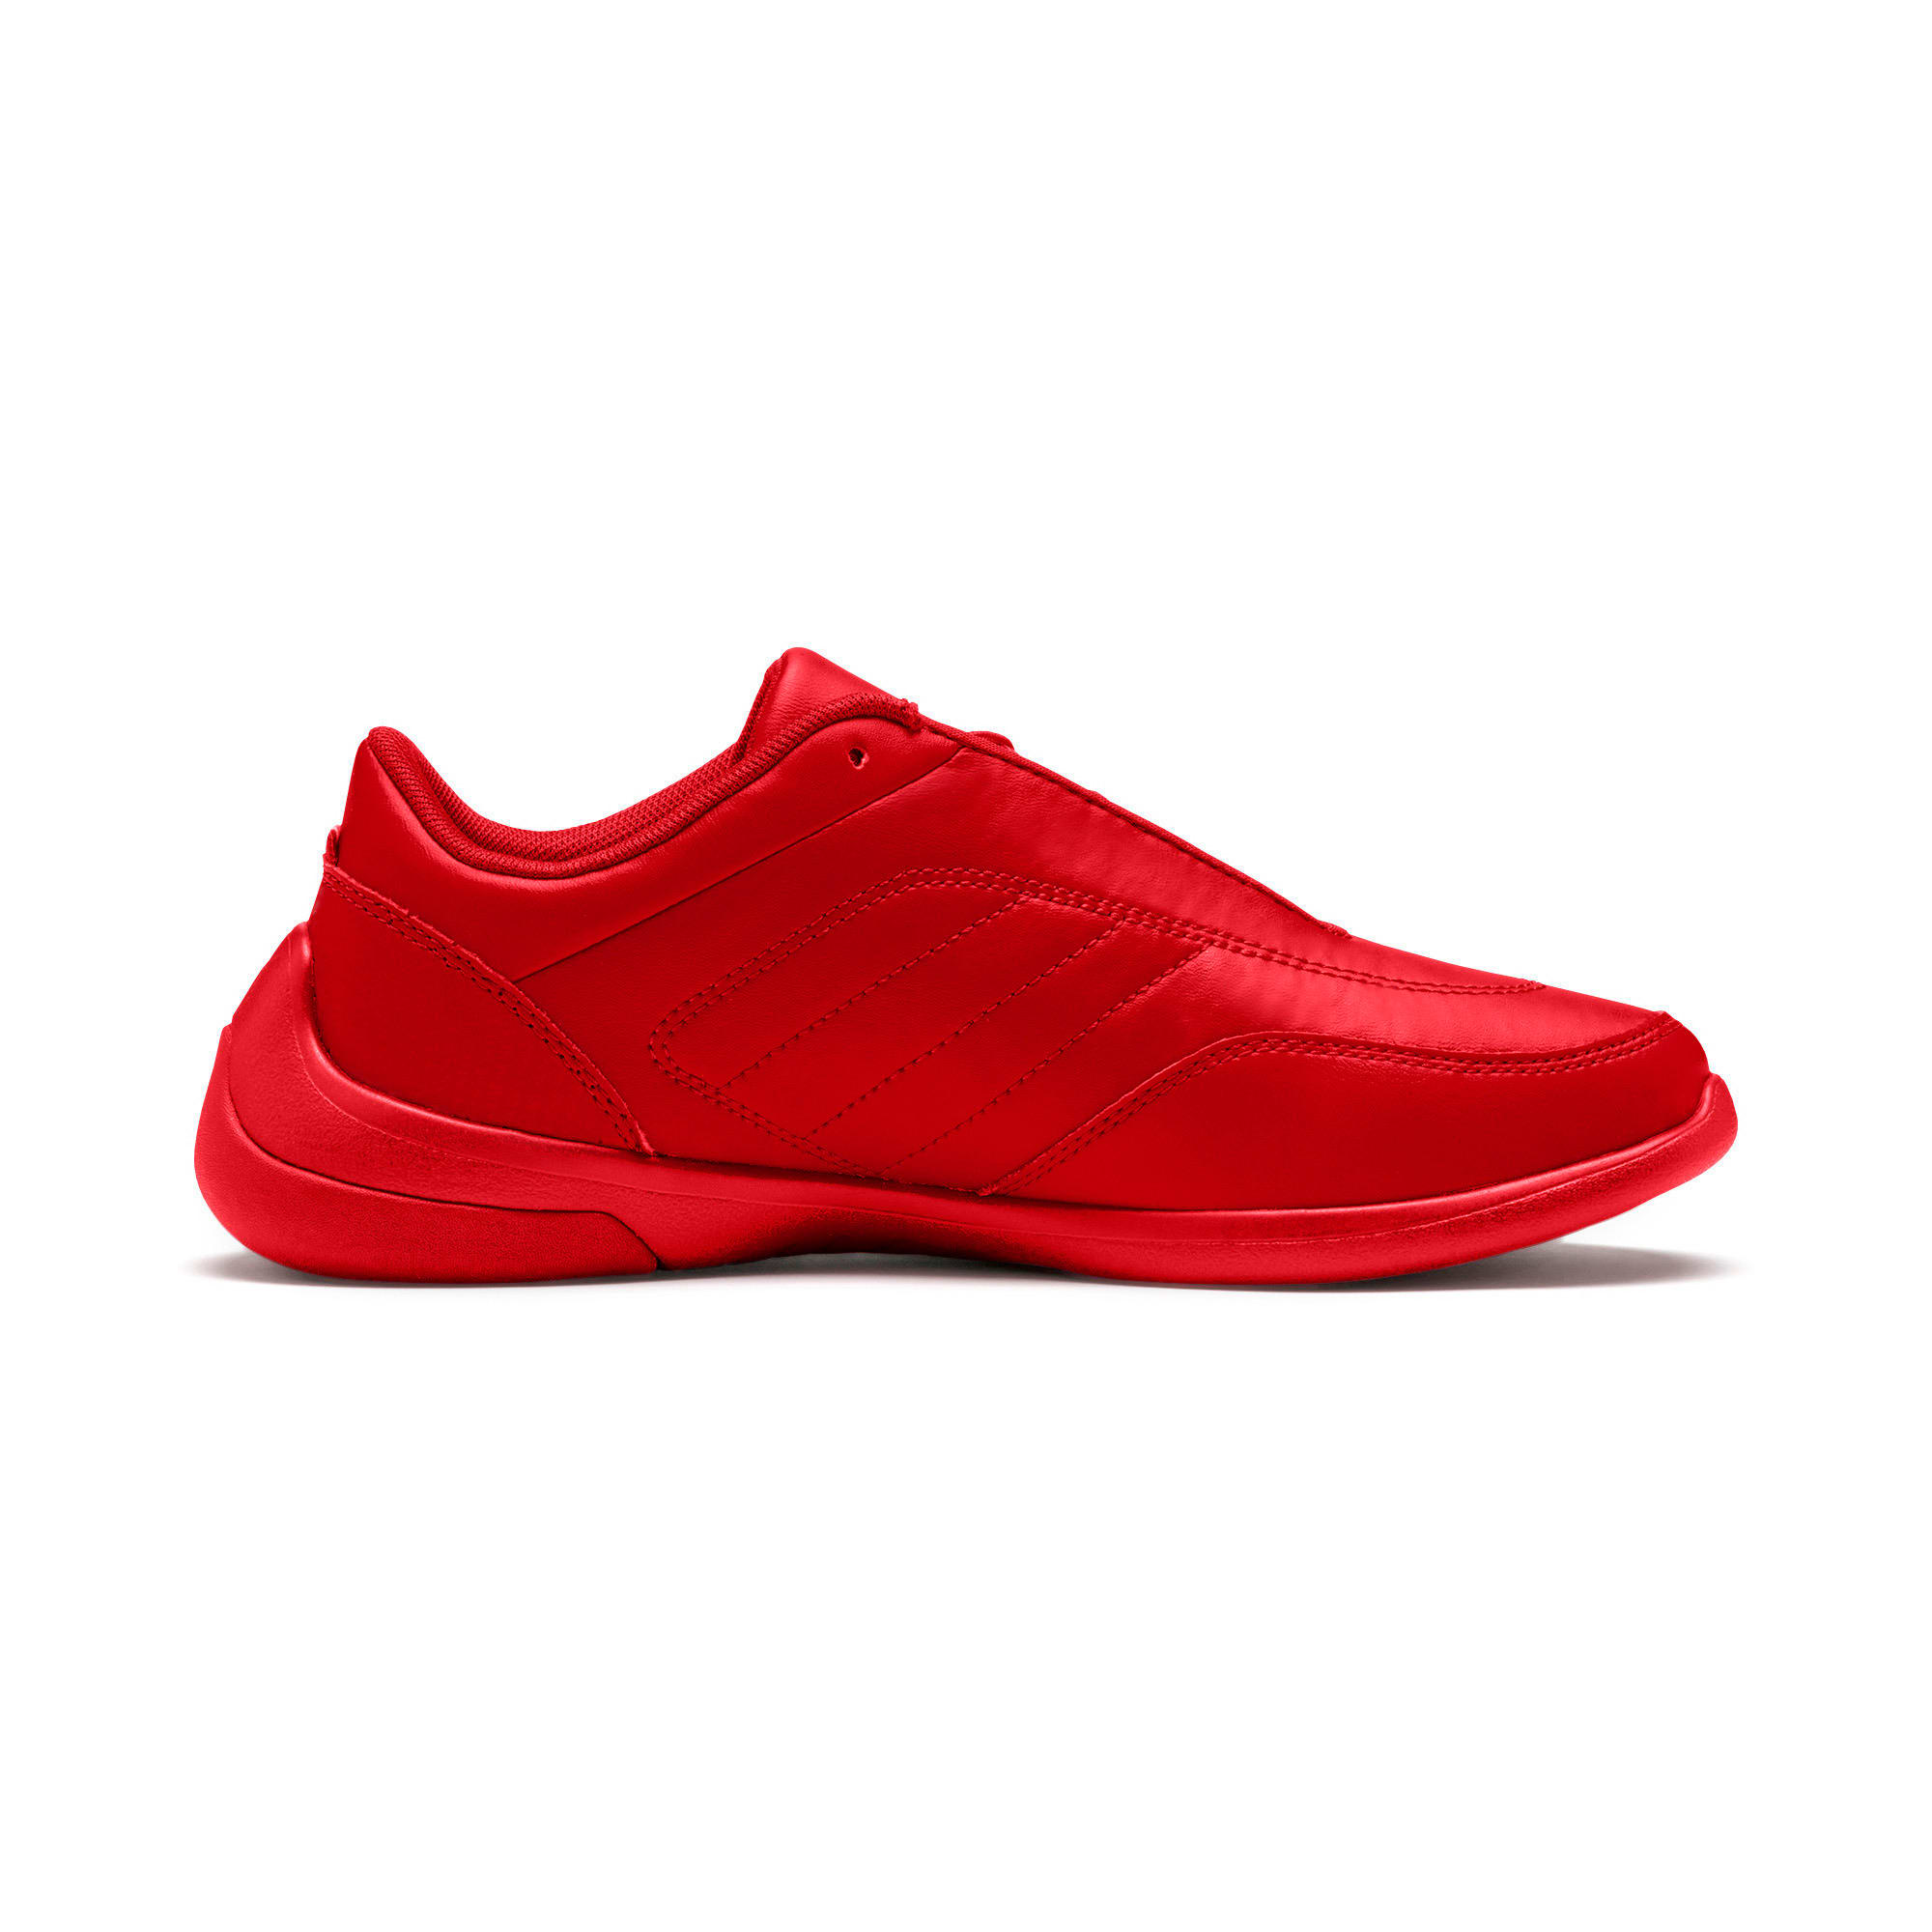 Thumbnail 5 of Ferrari Kart Cat III Youth Trainers, Rosso Corsa-Wht-Rosso Corsa, medium-IND